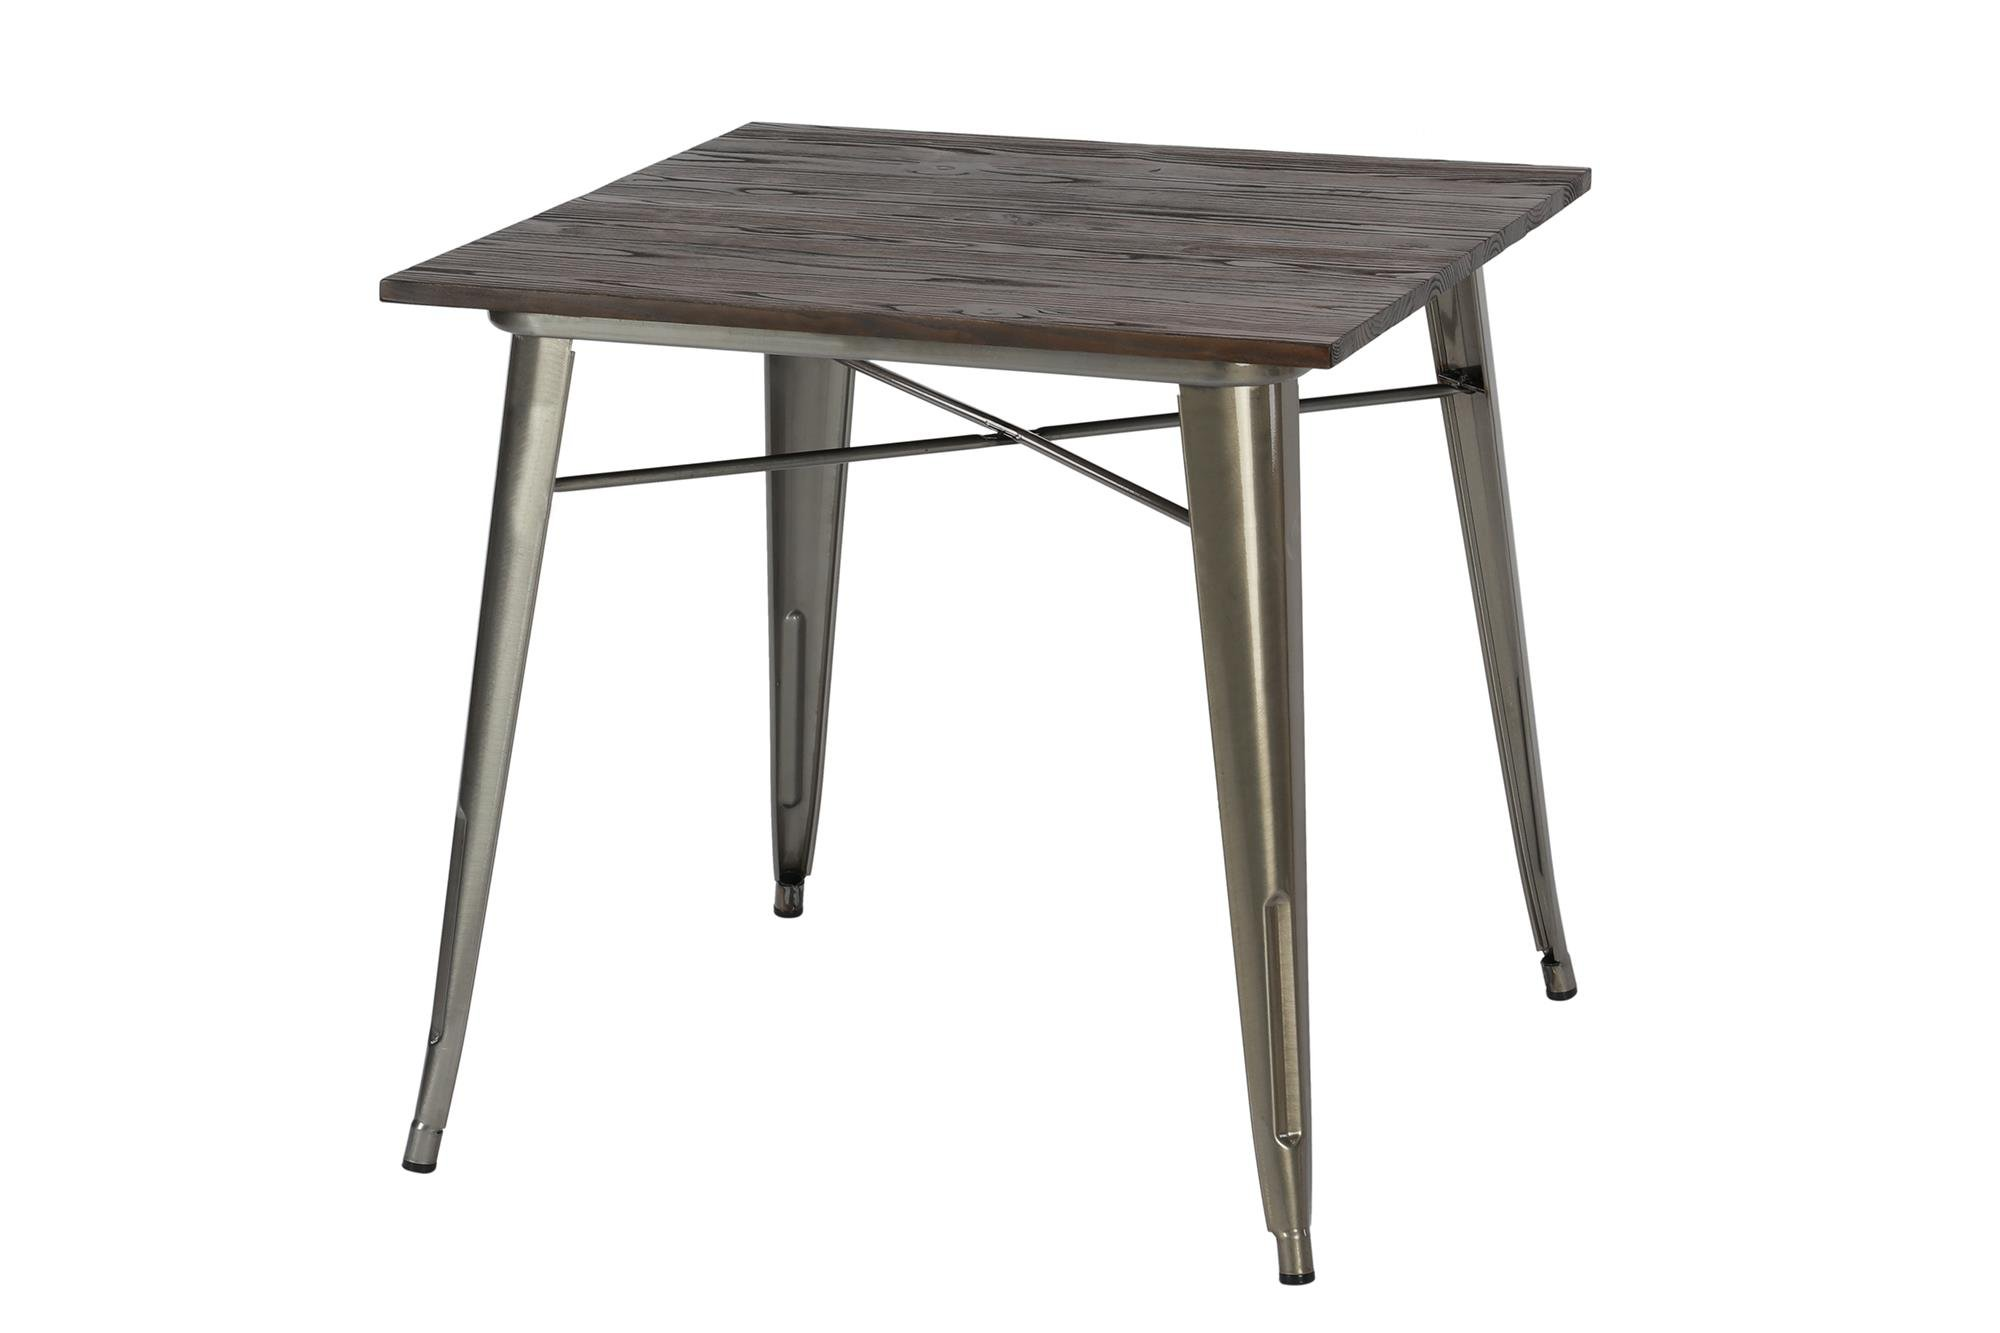 DHP Fusion Metal Square Dining Table with Wood Table Top, Distressed Metal Finish for Industrial Appeal, Antique Gun Metal by DHP